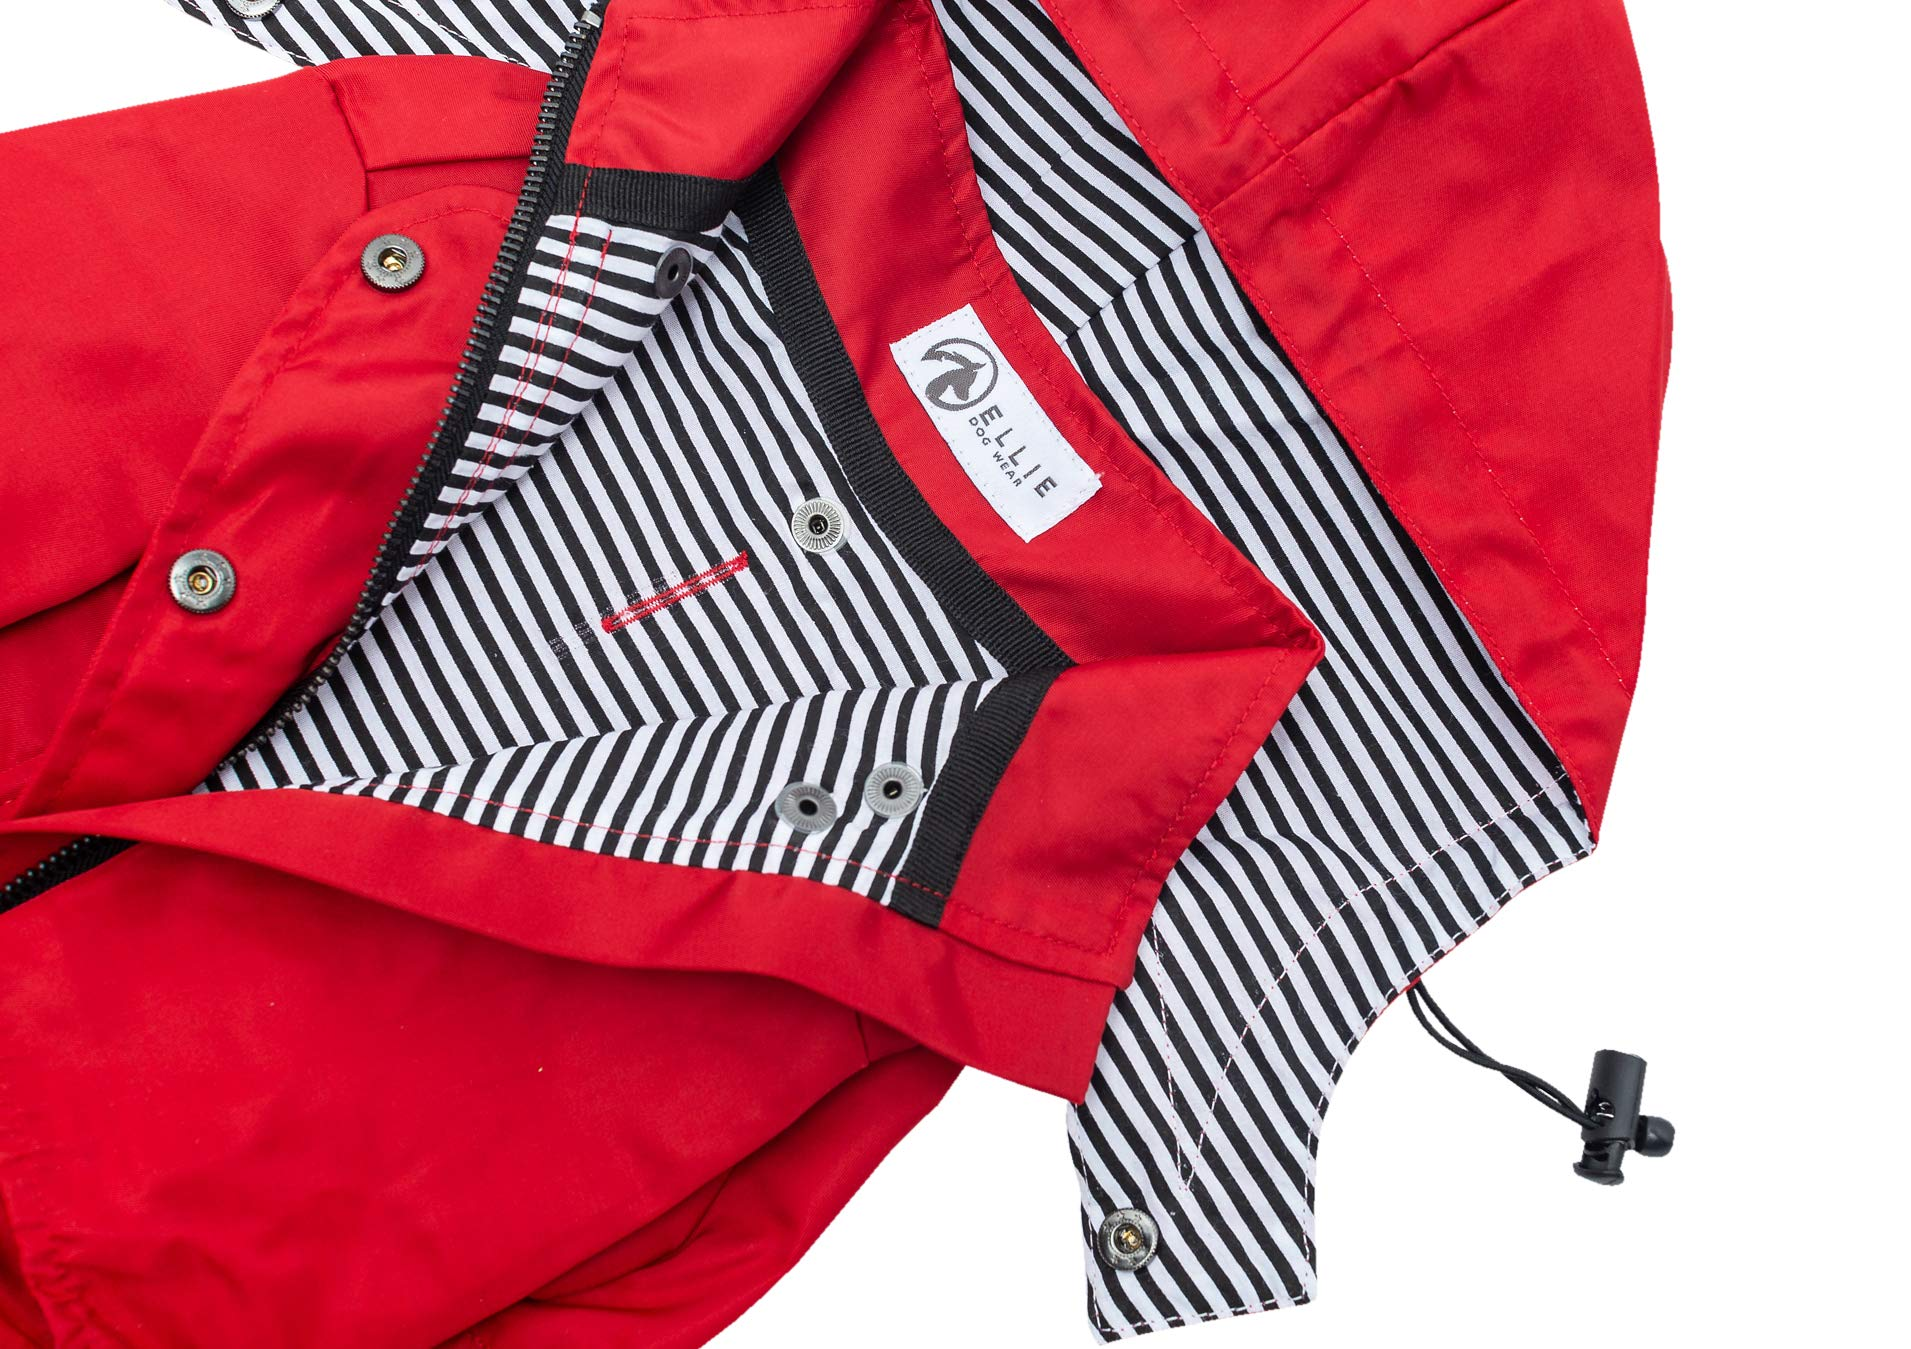 Ellie Dog Wear Red Zip Up Dog Raincoat with Reflective Buttons, Pockets, Rain/Water Resistant, Adjustable Drawstring, Removable Hoodie - Size XS to XXL Available - Stylish Premium Dog Raincoats (M) by Ellie Dog Wear (Image #3)